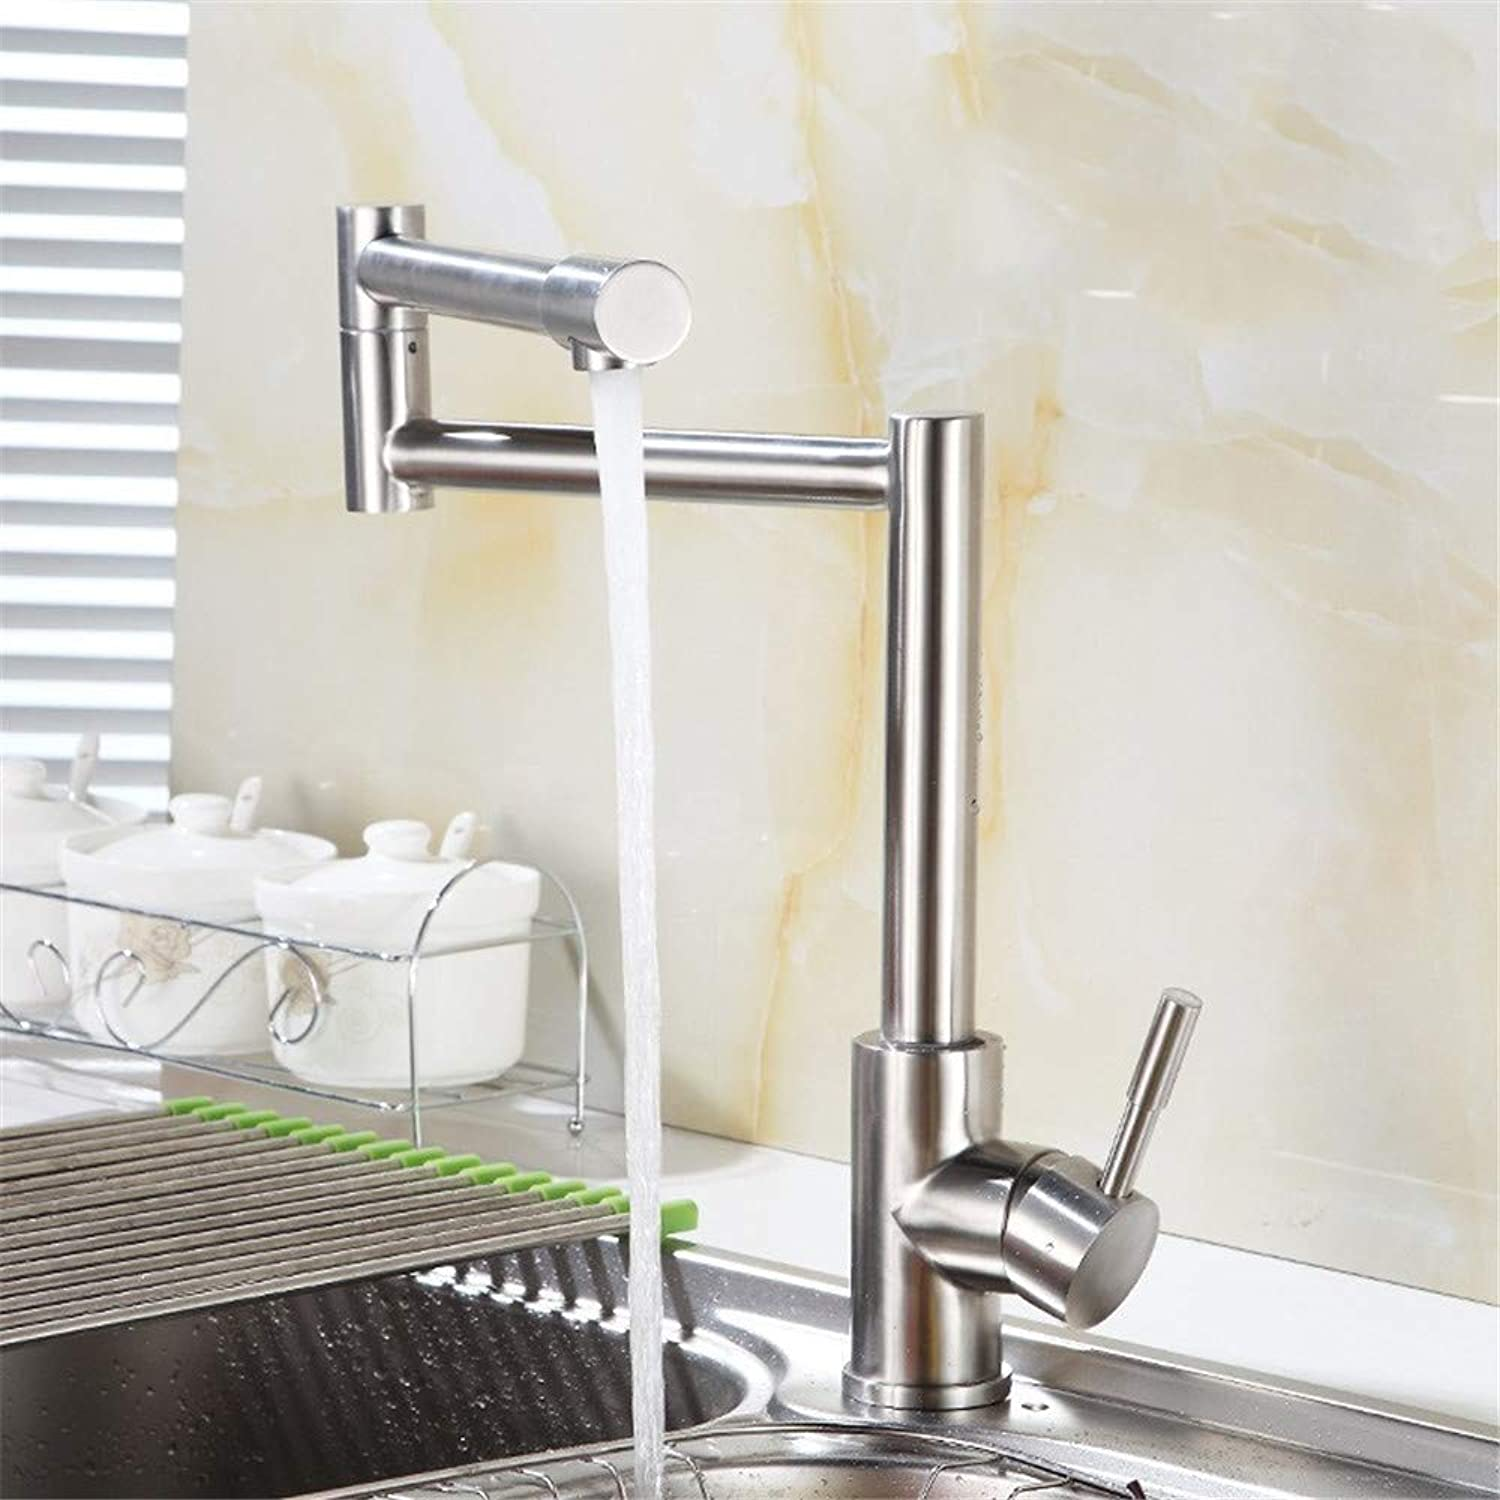 Oudan 304 Stainless Steel Faucet Unleaded Foldable Table Vegetables Basin Sink Faucet (color   -, Size   -)